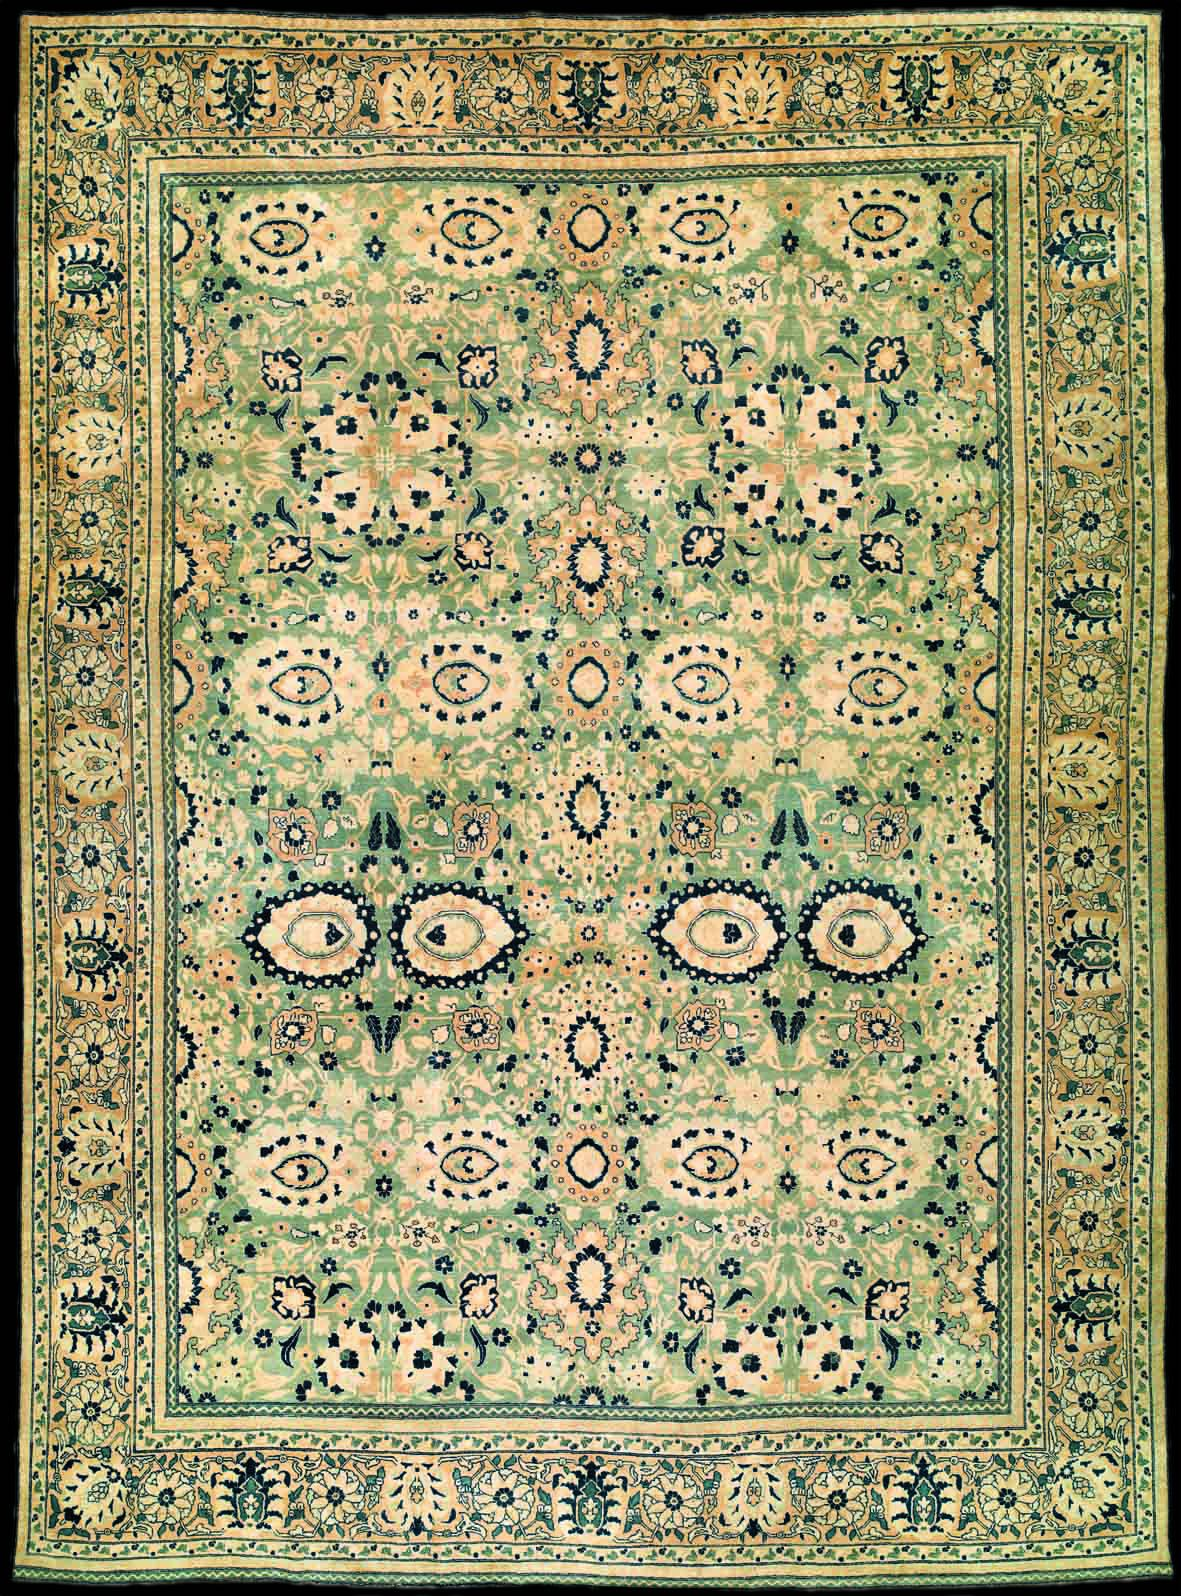 Antique Tabriz Persian Rug With The Moss Green Field Persian Rug Rugs On Carpet Rugs